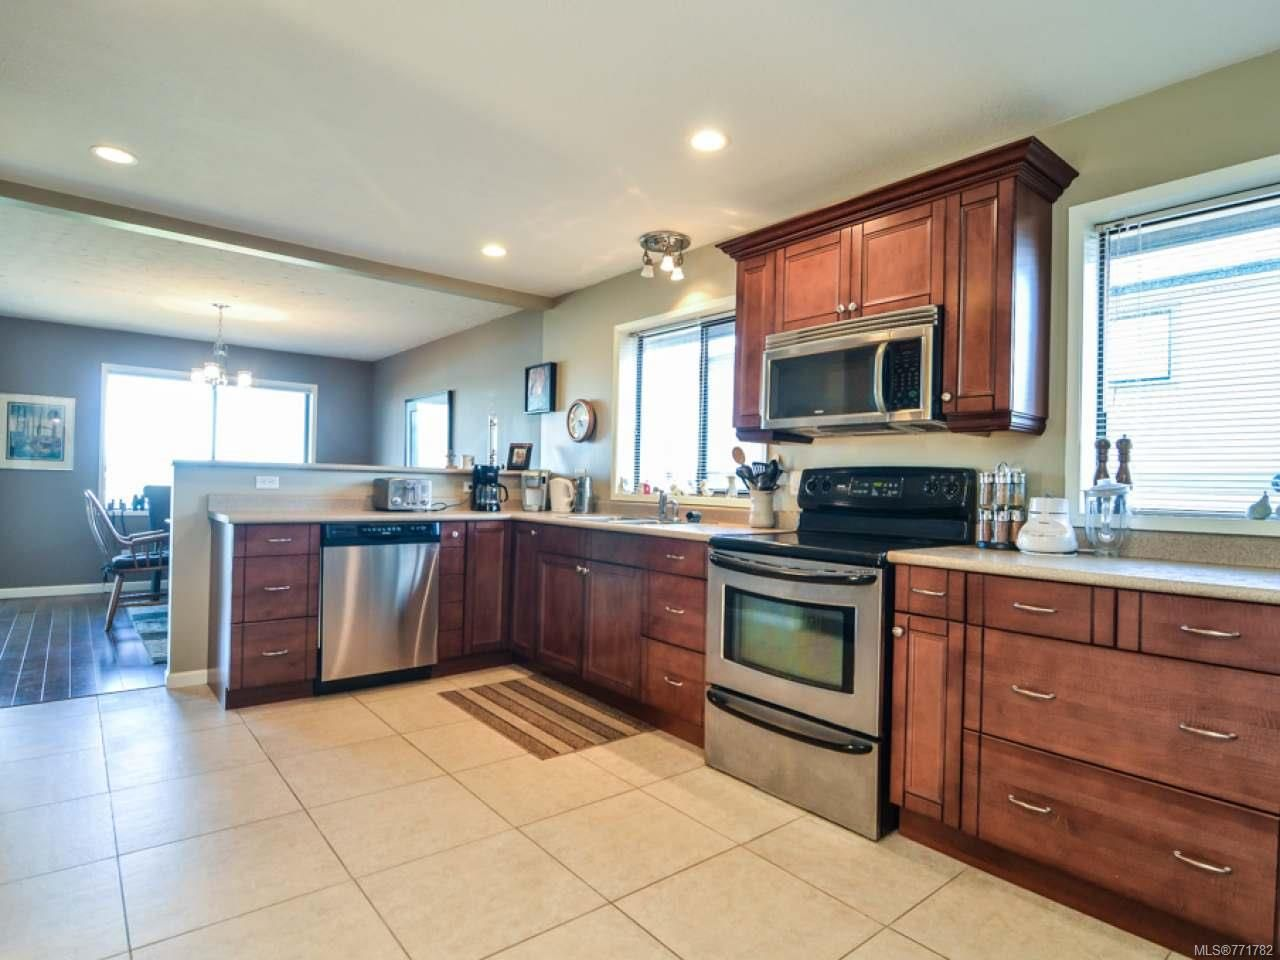 Photo 20: Photos: 451 S McLean St in CAMPBELL RIVER: CR Campbell River Central House for sale (Campbell River)  : MLS®# 771782